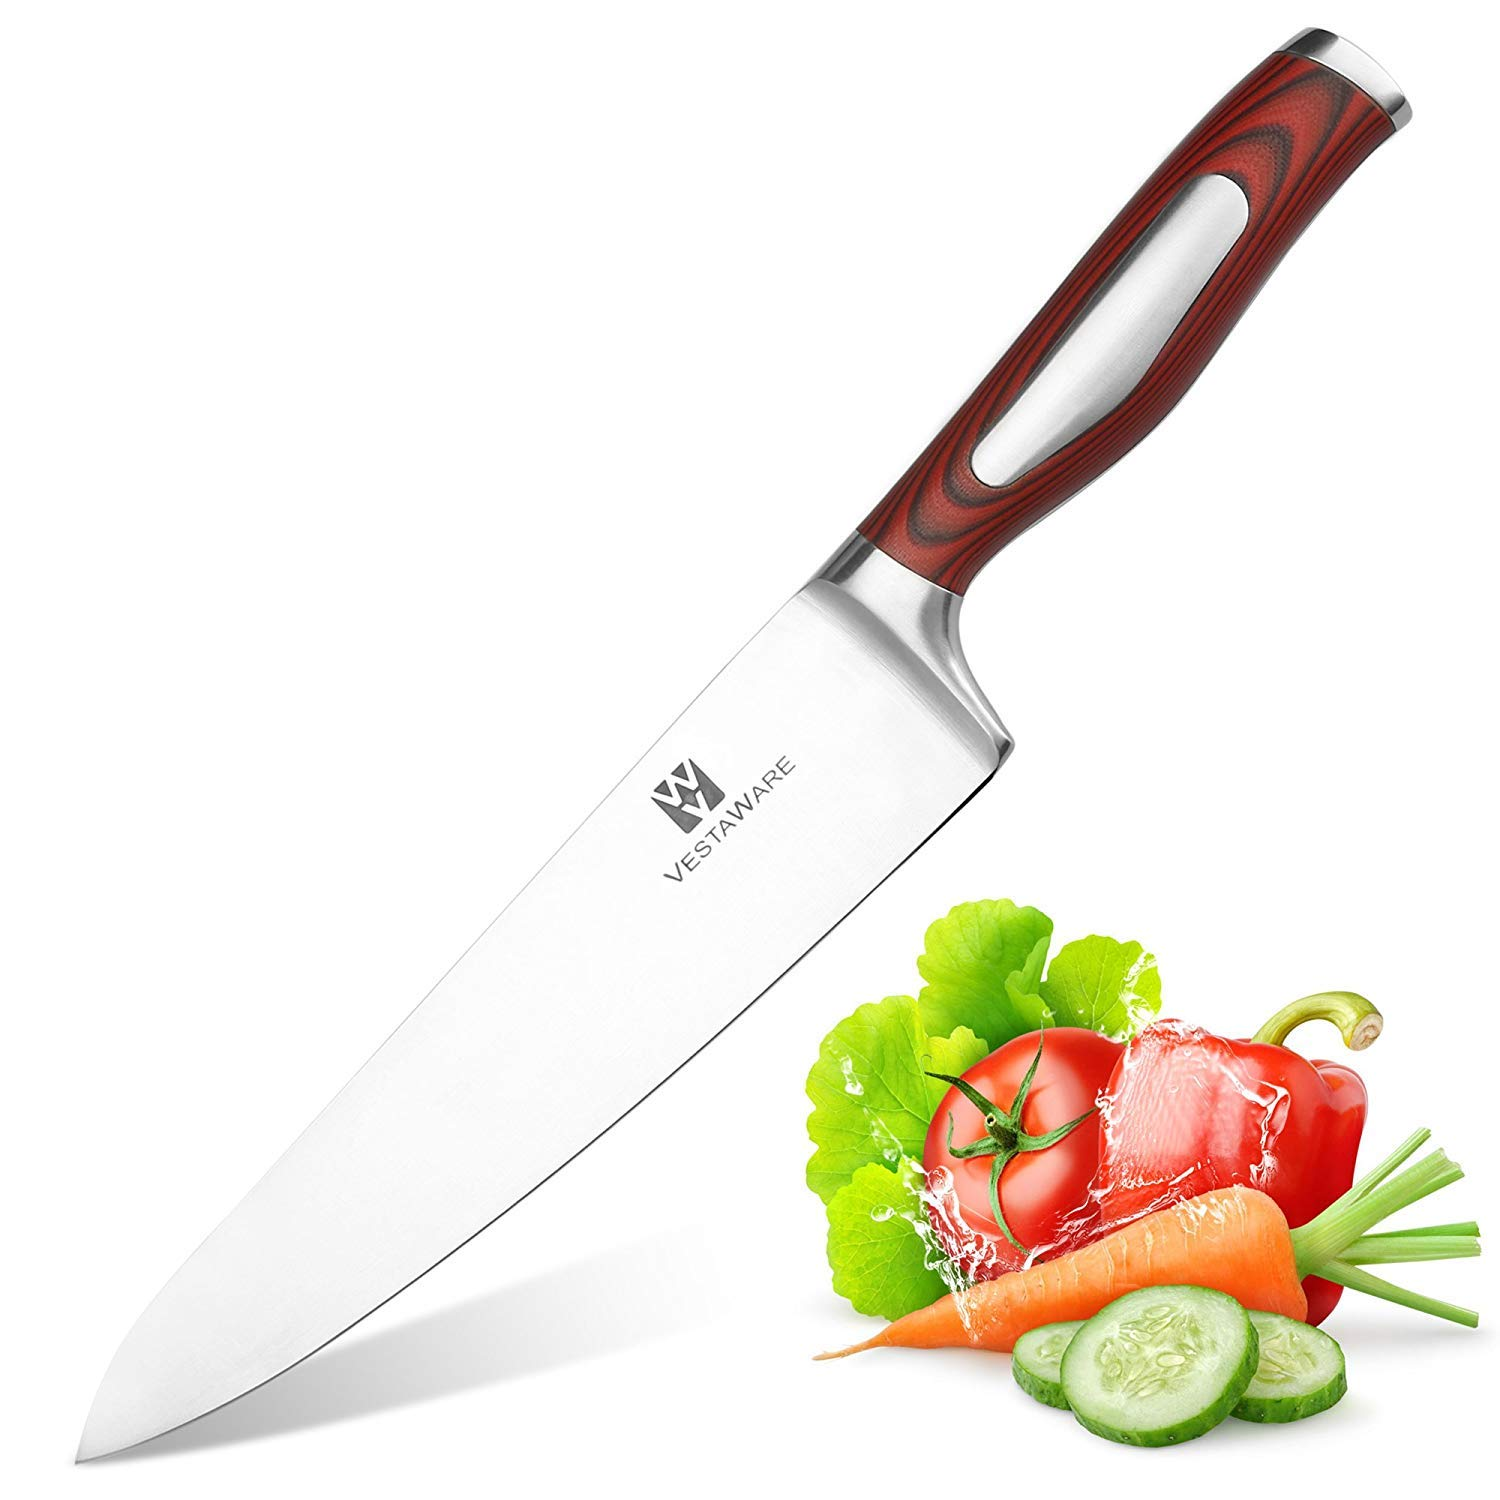 VestaWare Chef Knife 8 Inch Professional German High Carbon Stainless Steel Kitchen Knives Razor Sharp Blade & Ergonomic Handle with Gift Box